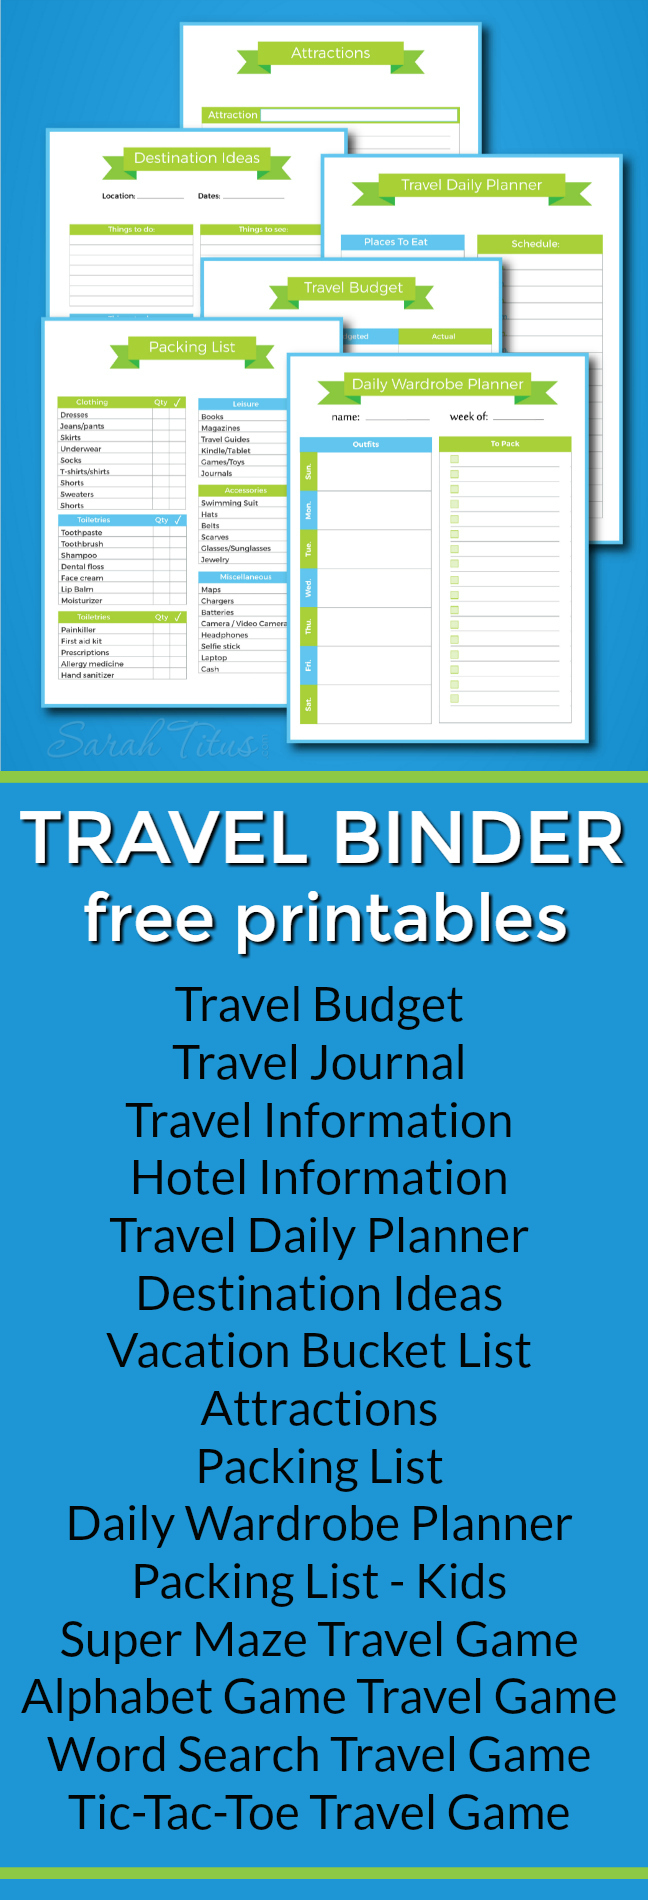 Planning on taking a vacation? Things can get kinda crazy if you're not organized. This Travel Binder is perfect to help you prepare so you can focus on more important things: having fun!